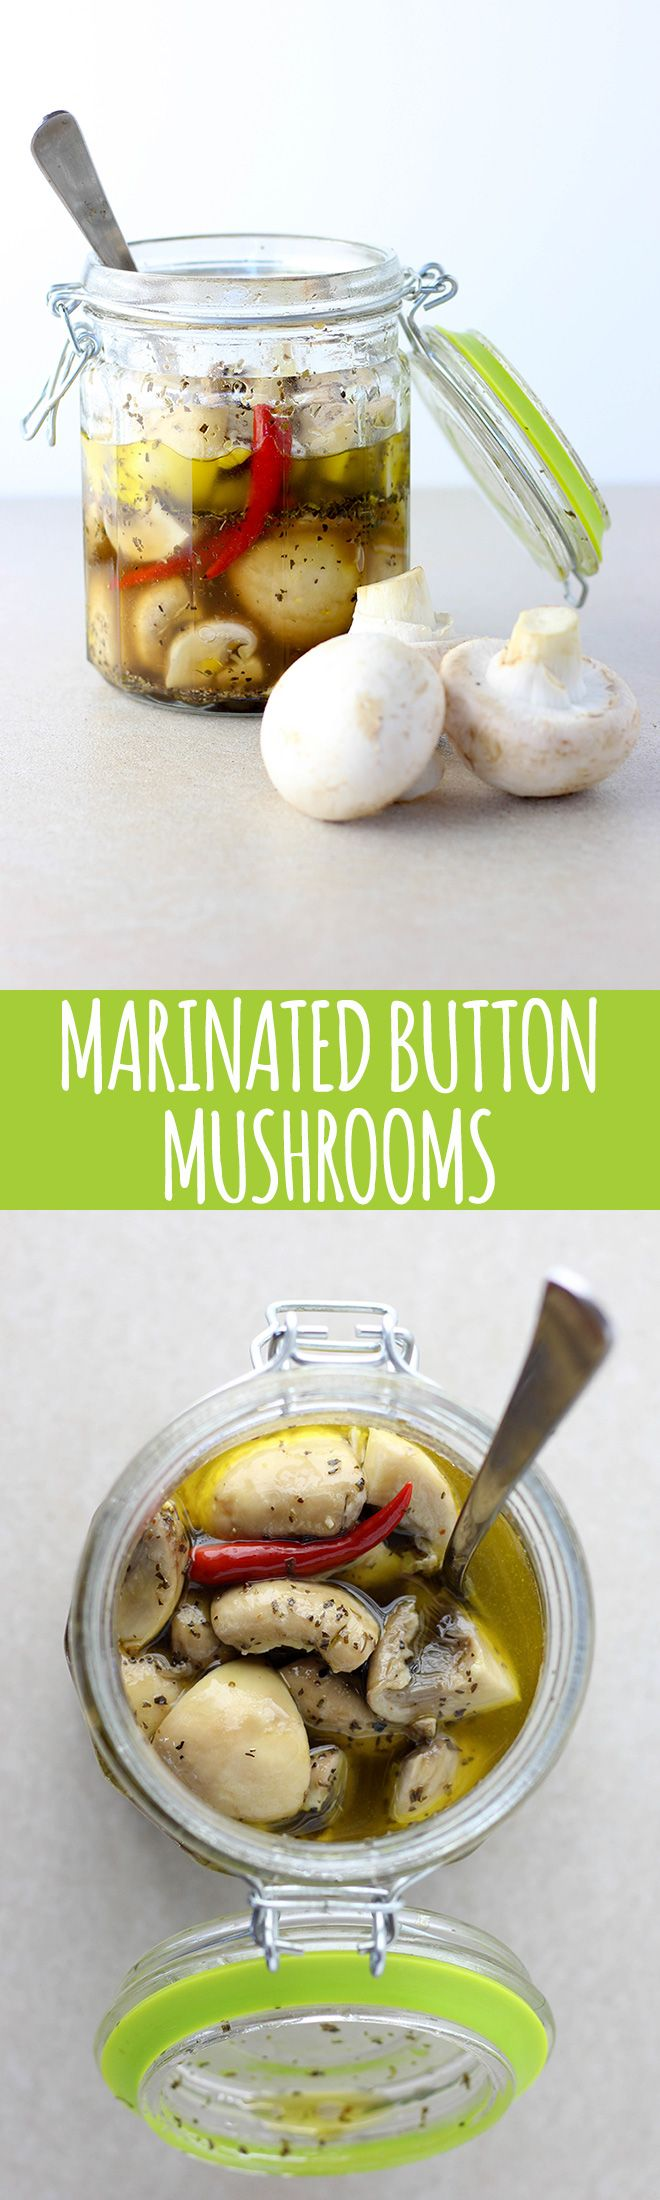 Marinated button mushrooms